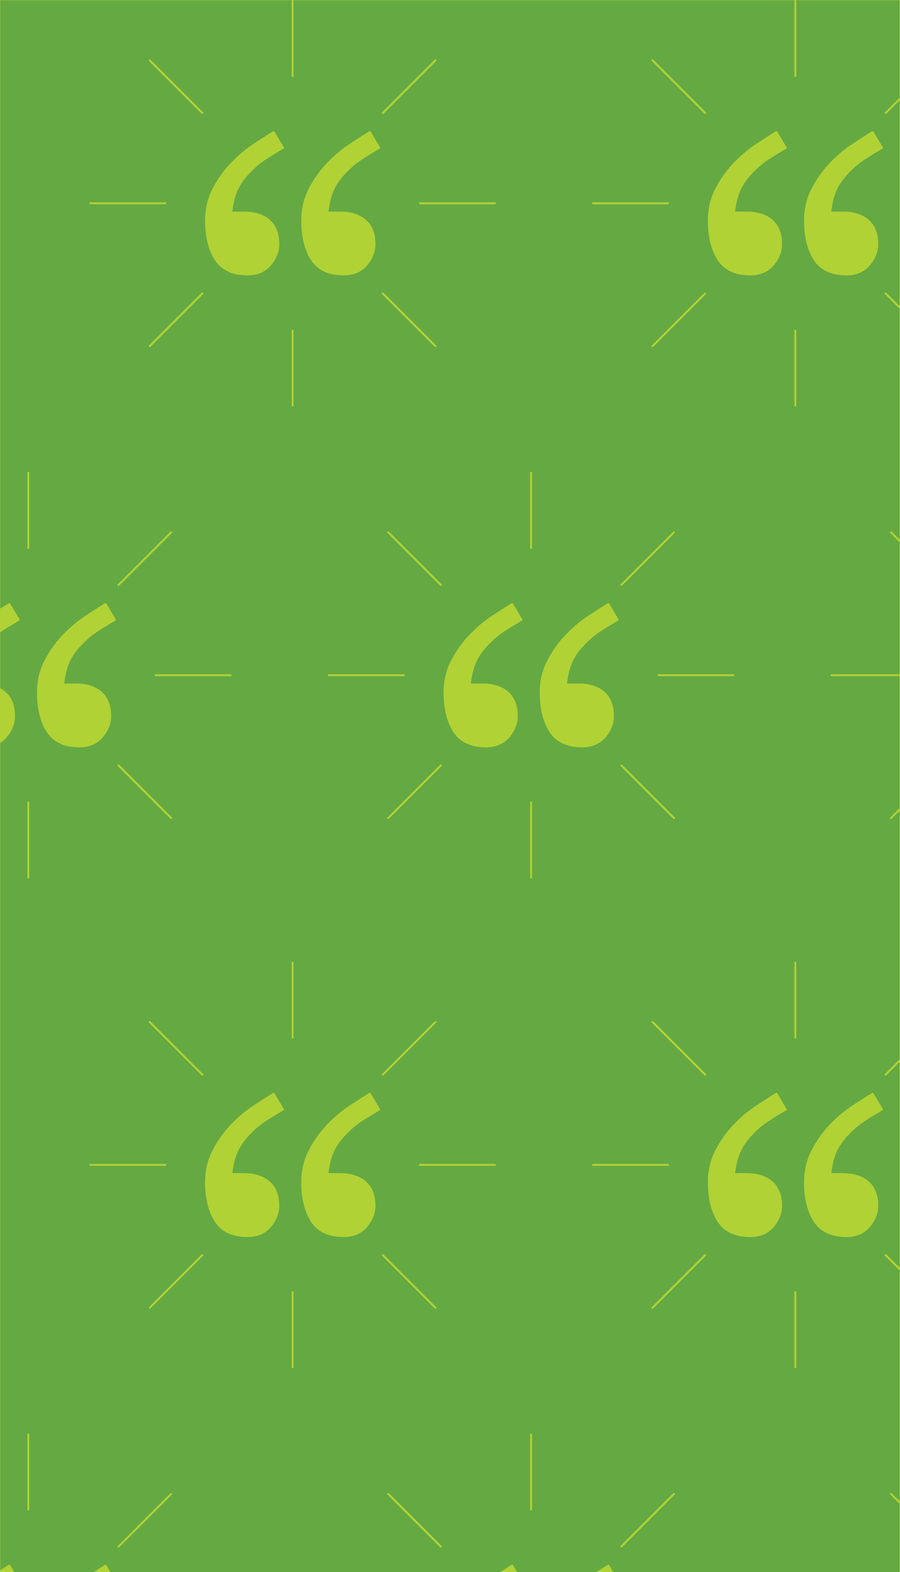 10 Quotes About Successful Sponsorship Activation for Show Organizers